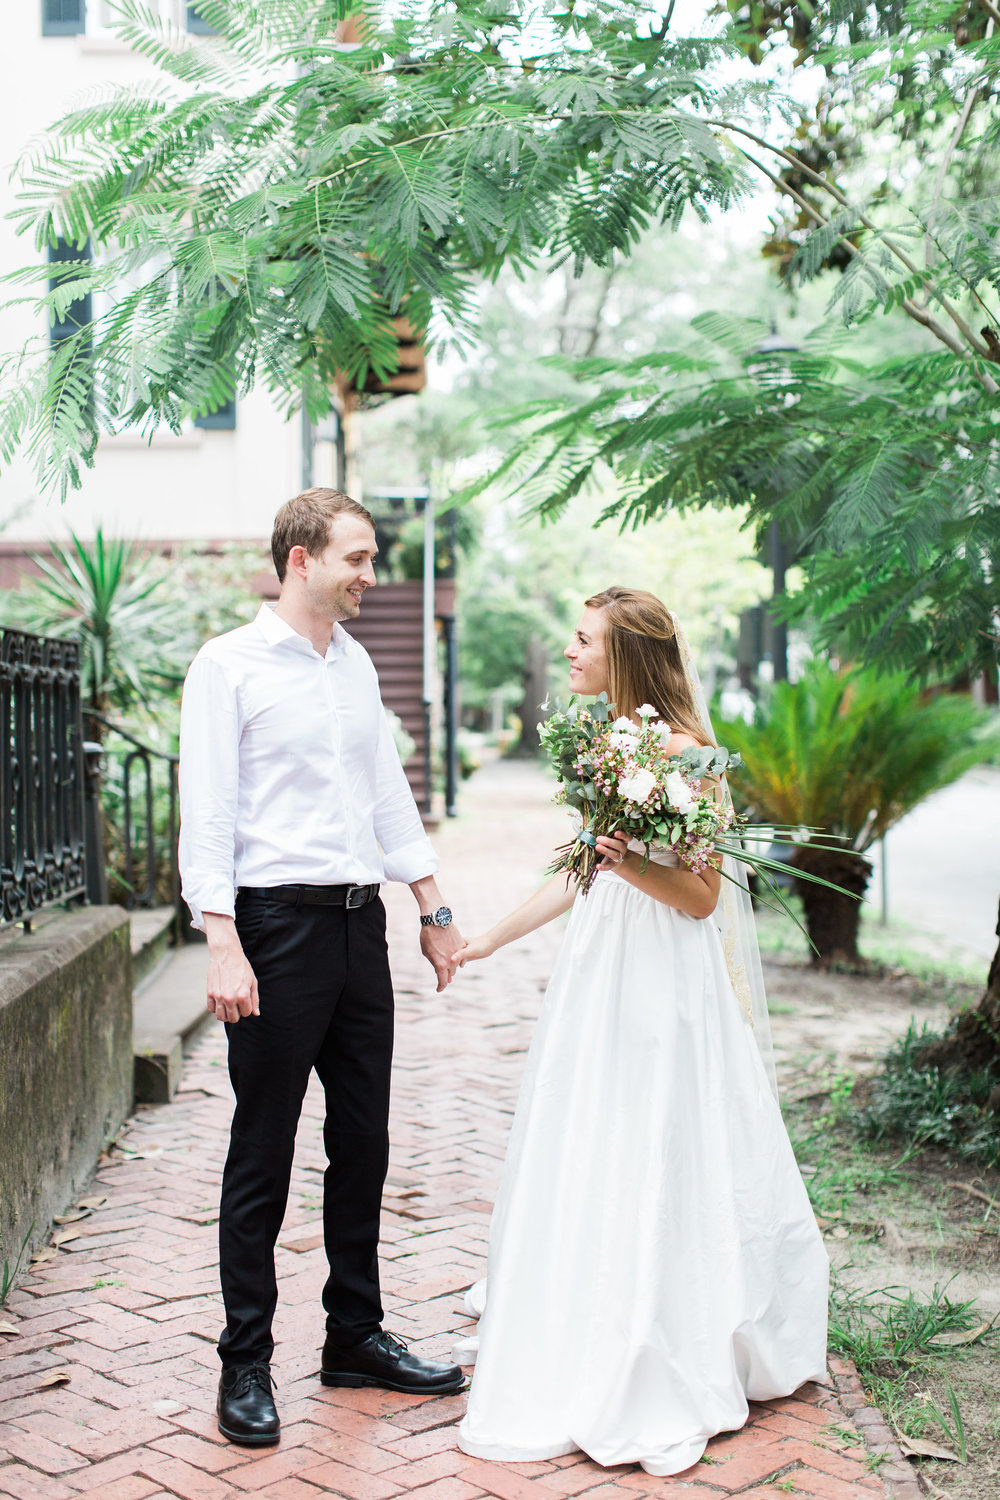 apt-b-photography-kate-mcdonald-mccants-forsyth-park-elopement-forsyth-fountain-rainy-wedding-day-savannah-florist-ivory-and-beau-bridal-boutique-savannah-wedding-gowns-savannah-weddings-savannah-wedding-planner-adele-amelia-gold-veil-12.jpg